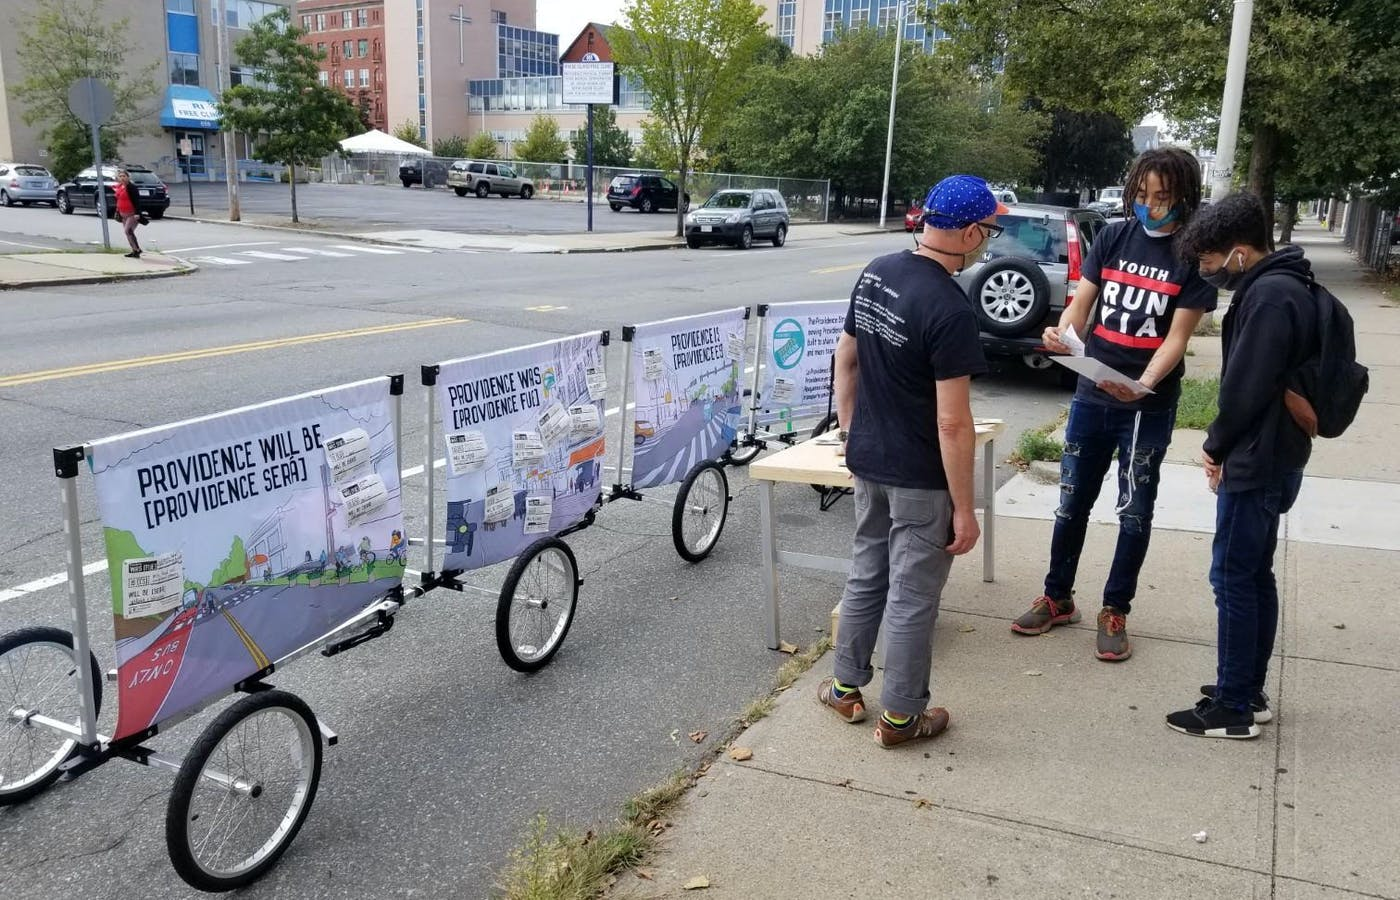 Alongside the nonprofit Youth in Action, the Providence Streets Coalition has been engaging residents on Broad Street around the city's planned infrastructure changes.